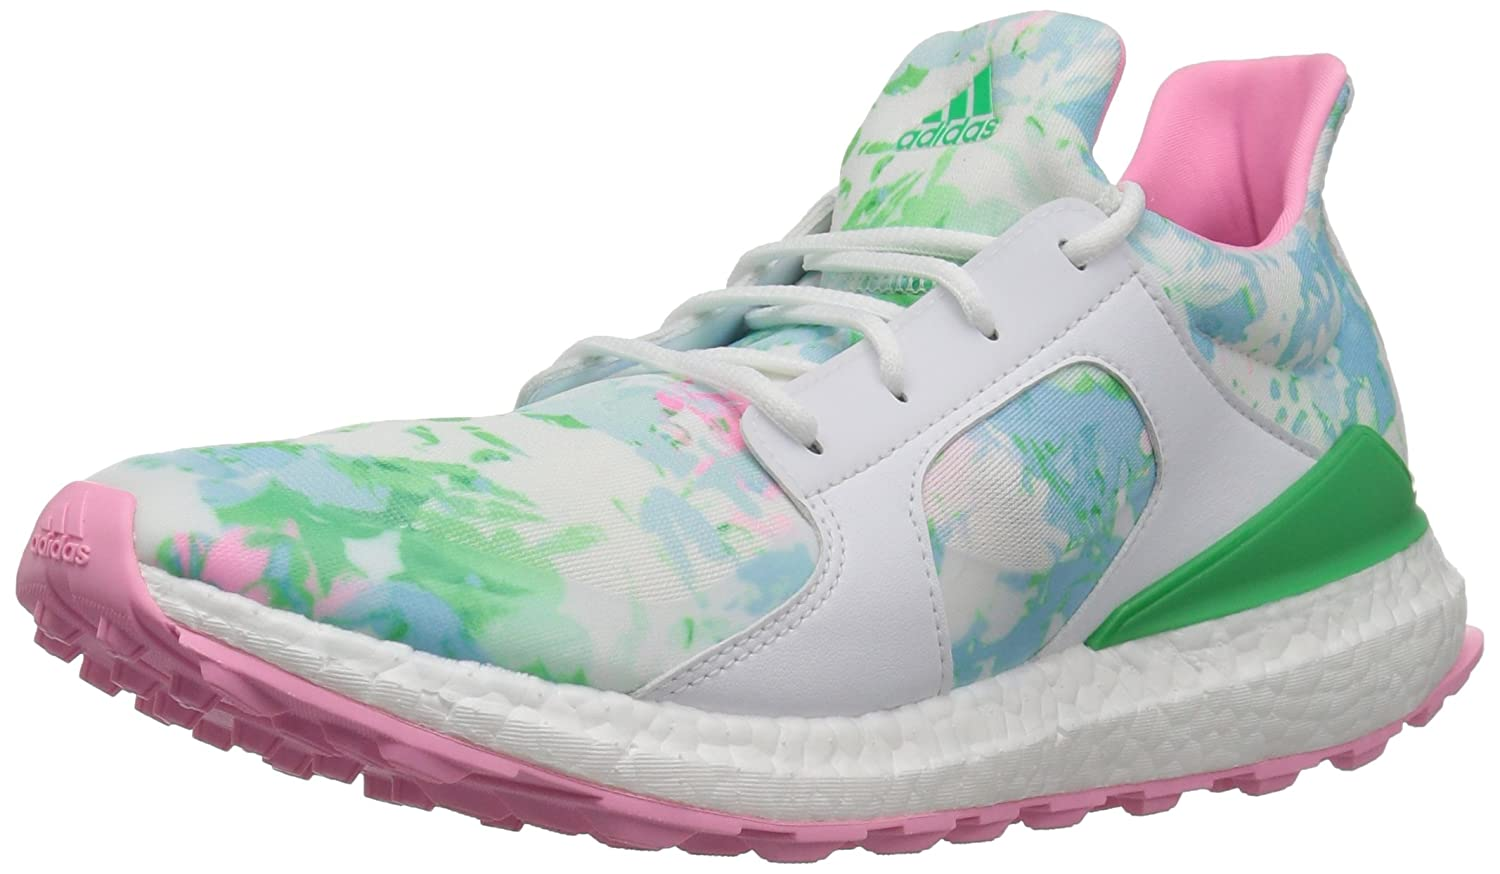 adidas Women's W Climacross Boost Eneblu Golf Shoe B01MZ6GY5W 11 B(M) US|White/Flash Lime/Pink